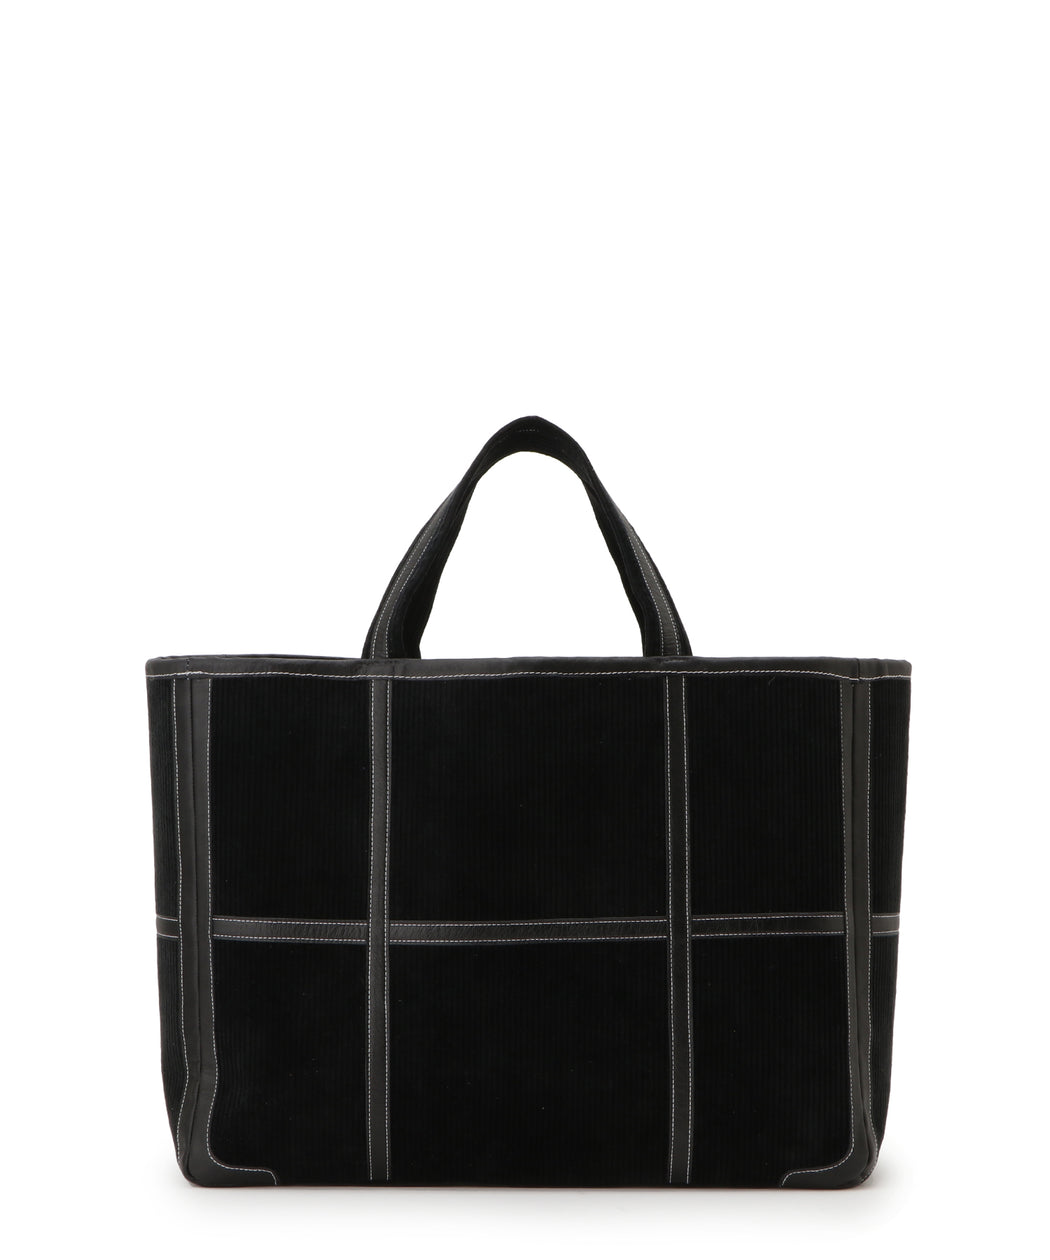 Large leather-trimmed corduroy tote